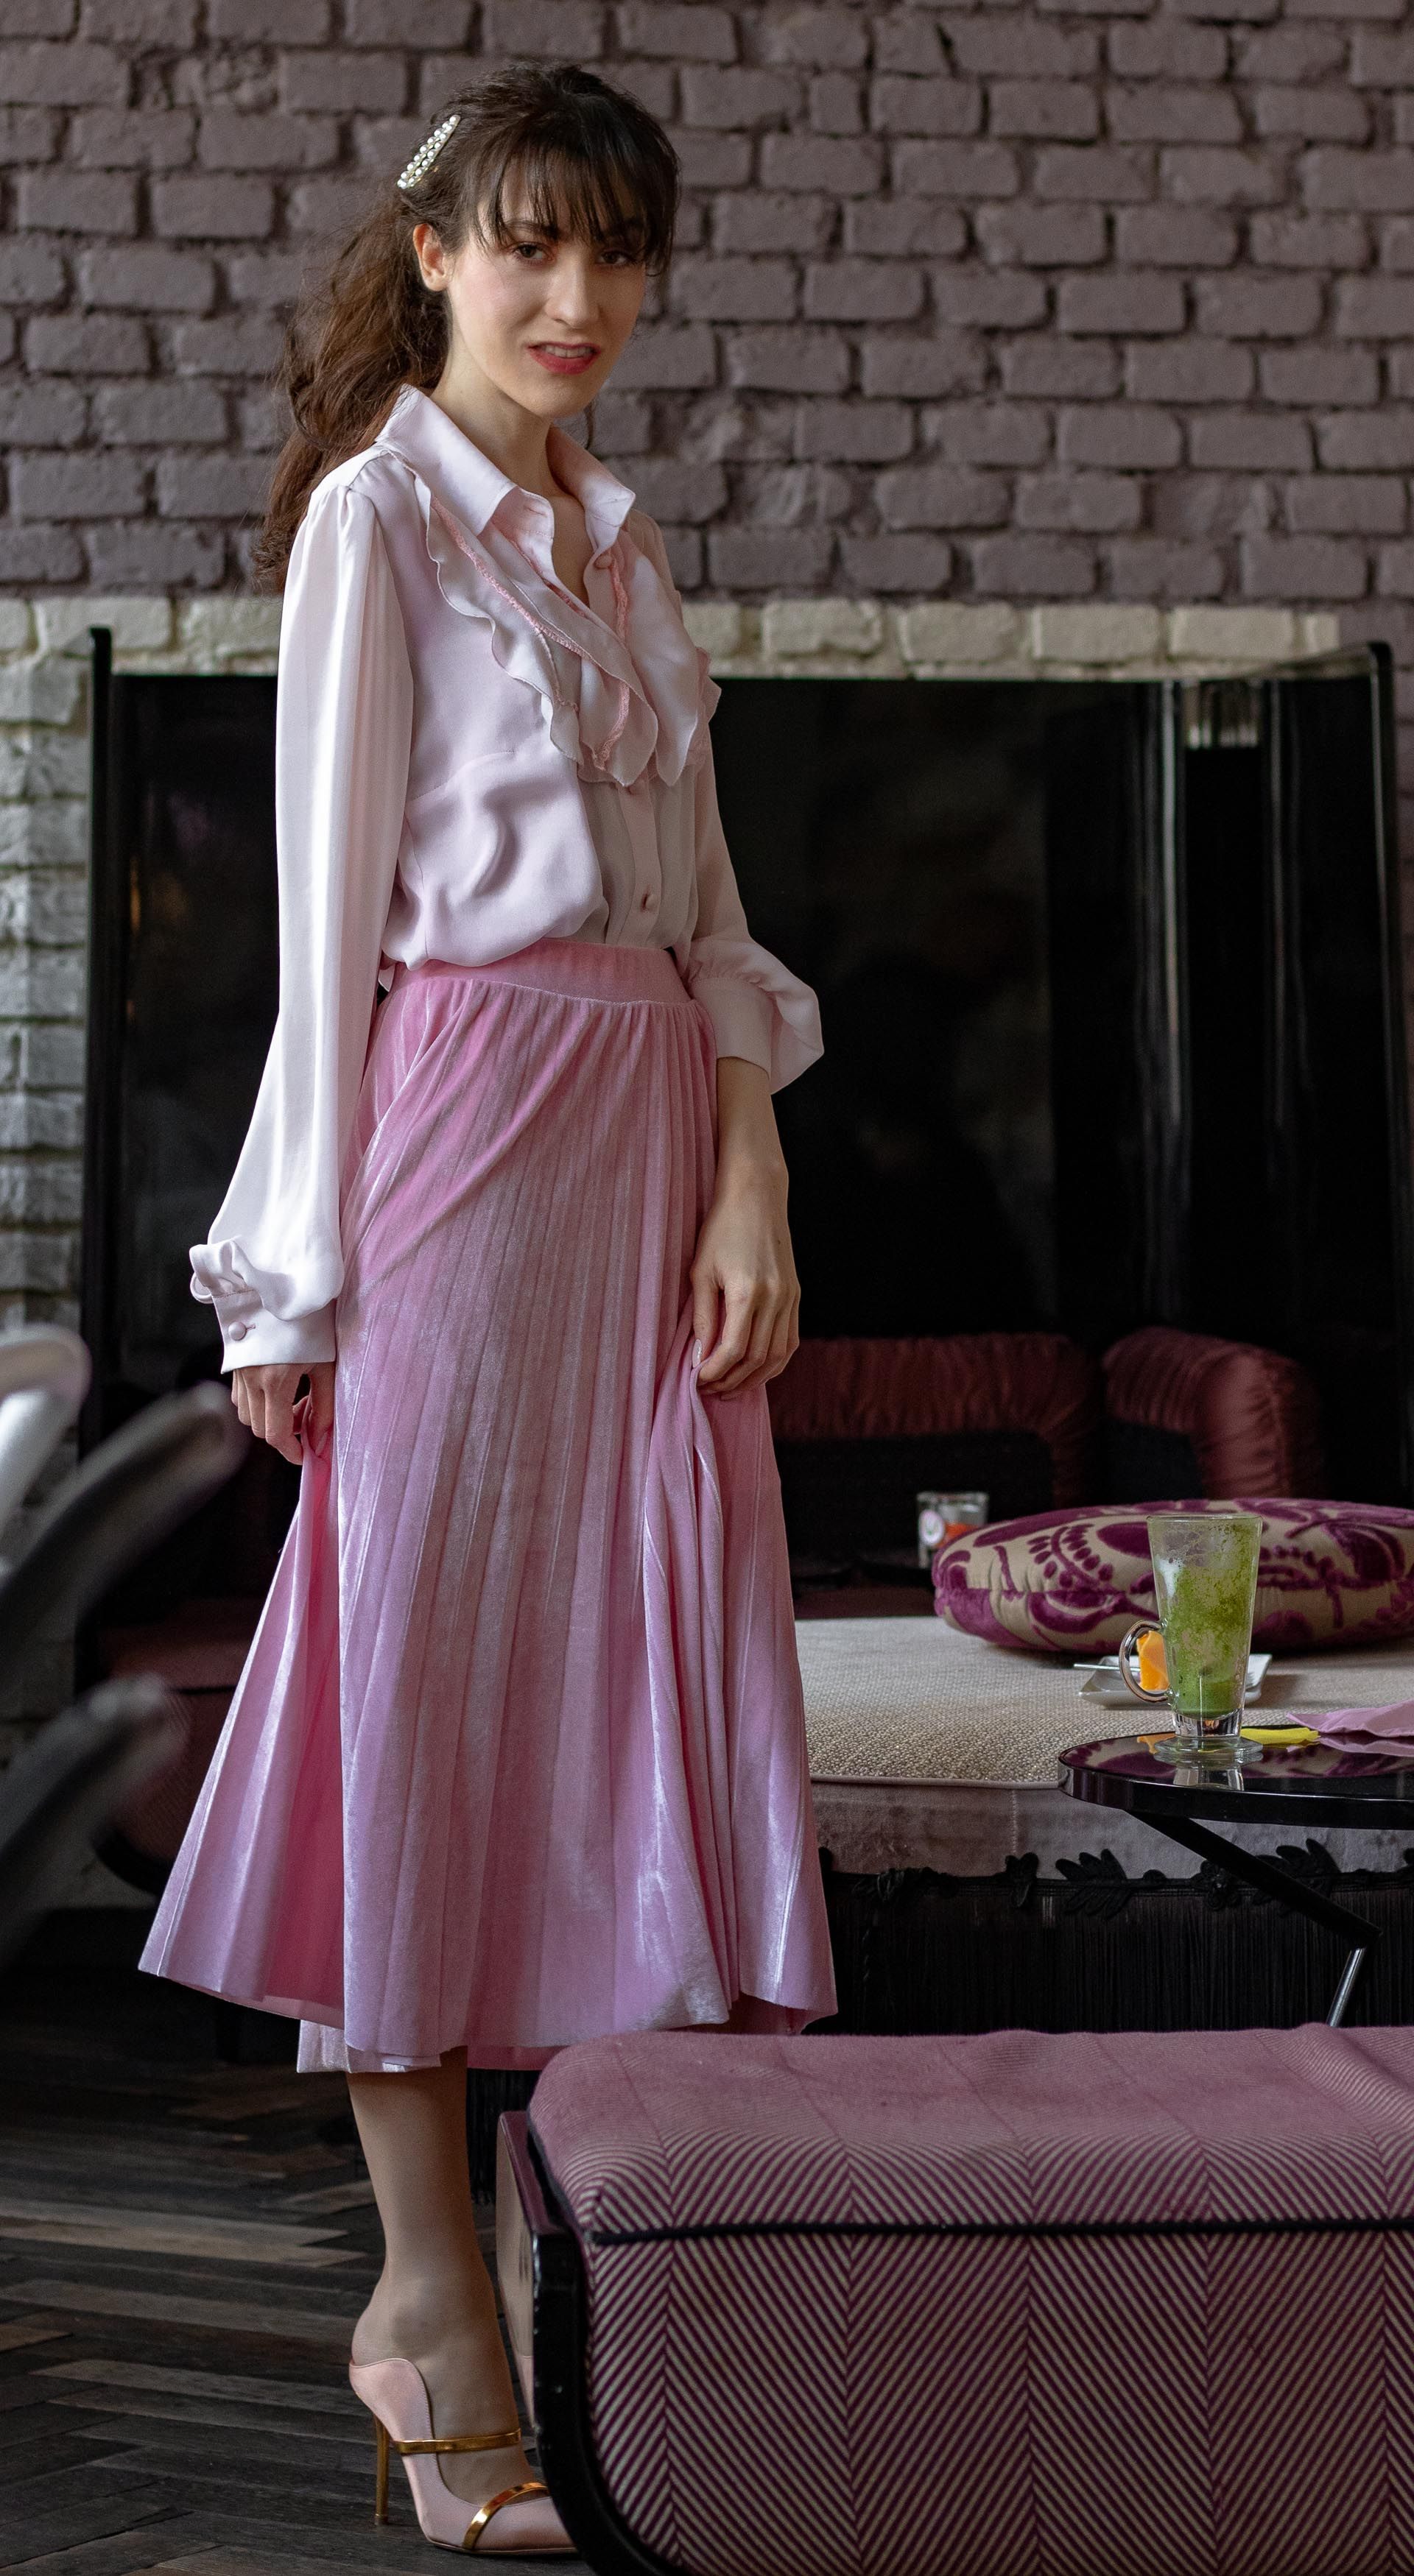 8 Ladylike Easter Brunch Outfit in Pink  Brunette from Wall